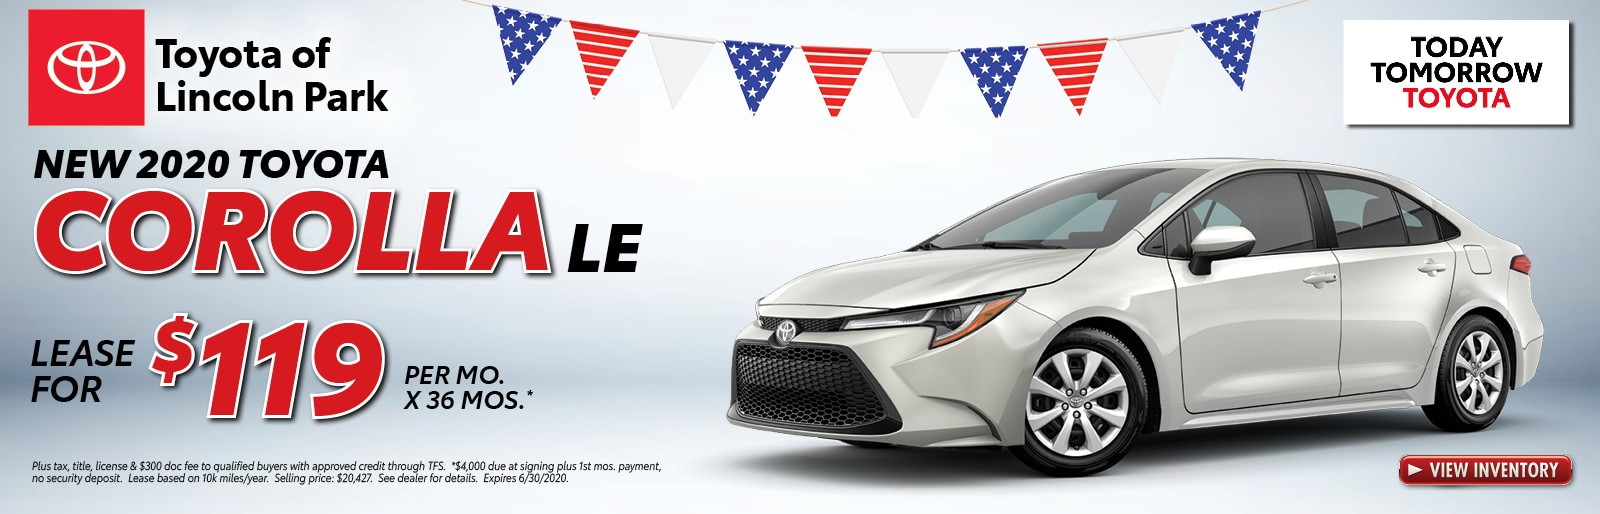 Lease a 2020 Corolla LE for $119/mo. x 36 mos.